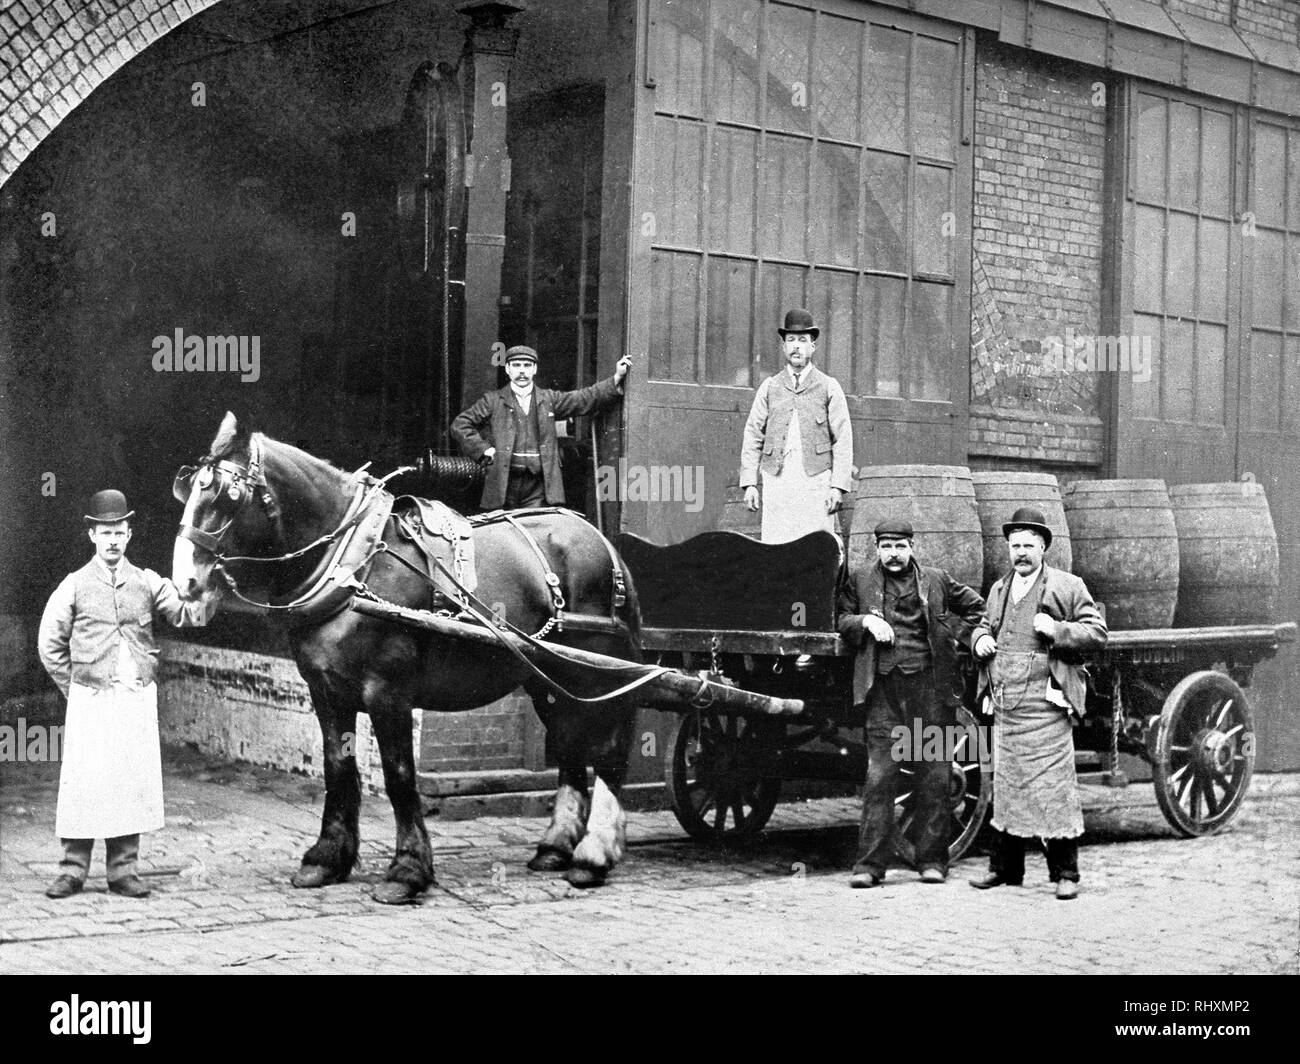 Brewers Dray Stock Photos & Brewers Dray Stock Images - Alamy